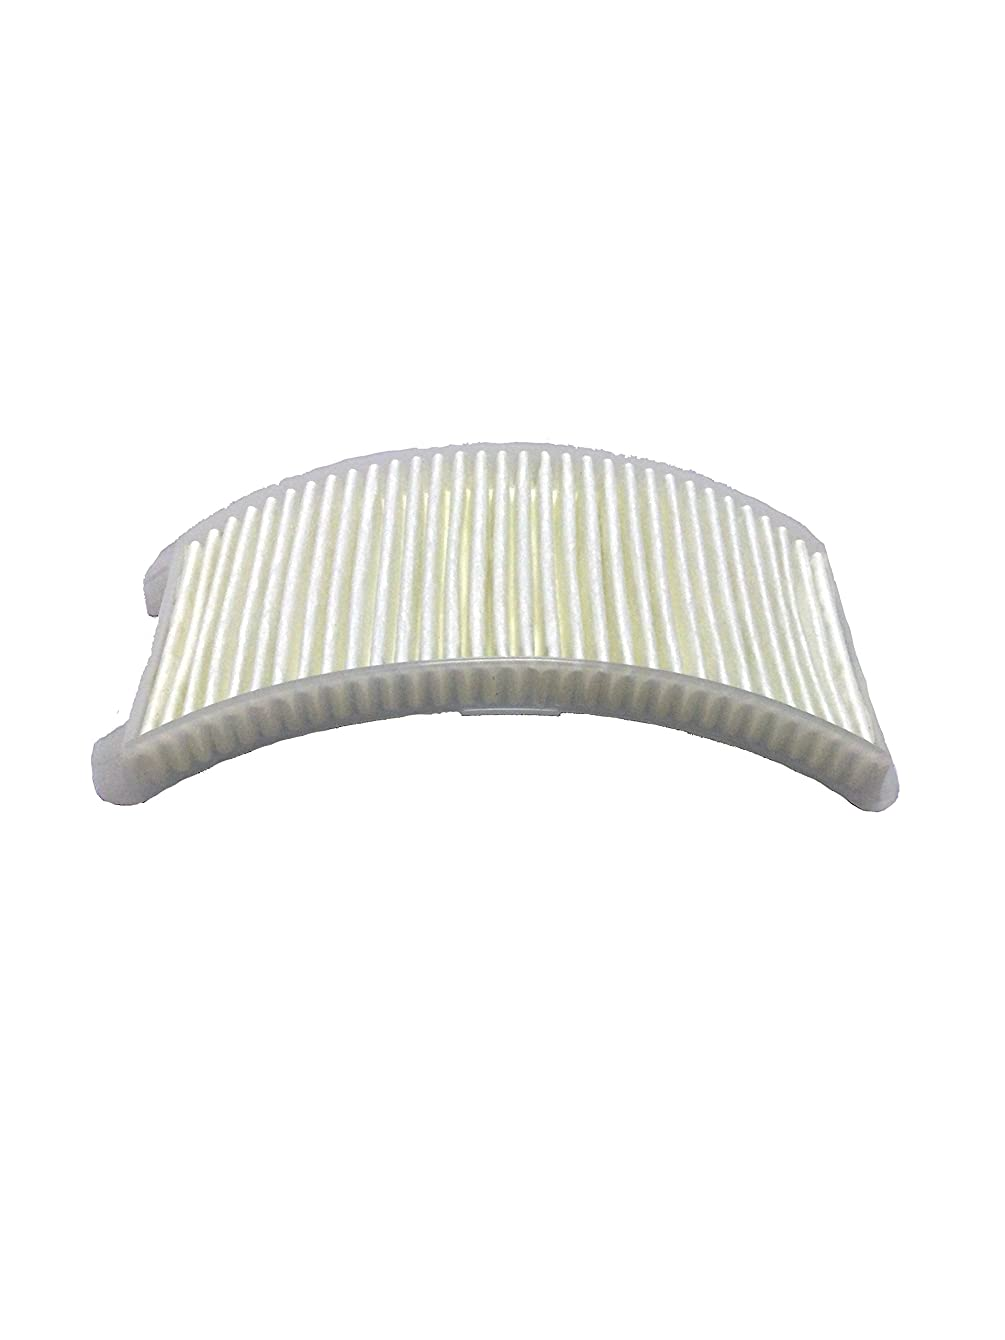 4YourHome 203140 Post Motor Exhaust Hepa Filter Designed to Fit Style 12 Powerforce Turbo & Bissell Vacuums Replaces Bissell Part# B-203-1402, 203-1402, 2031402